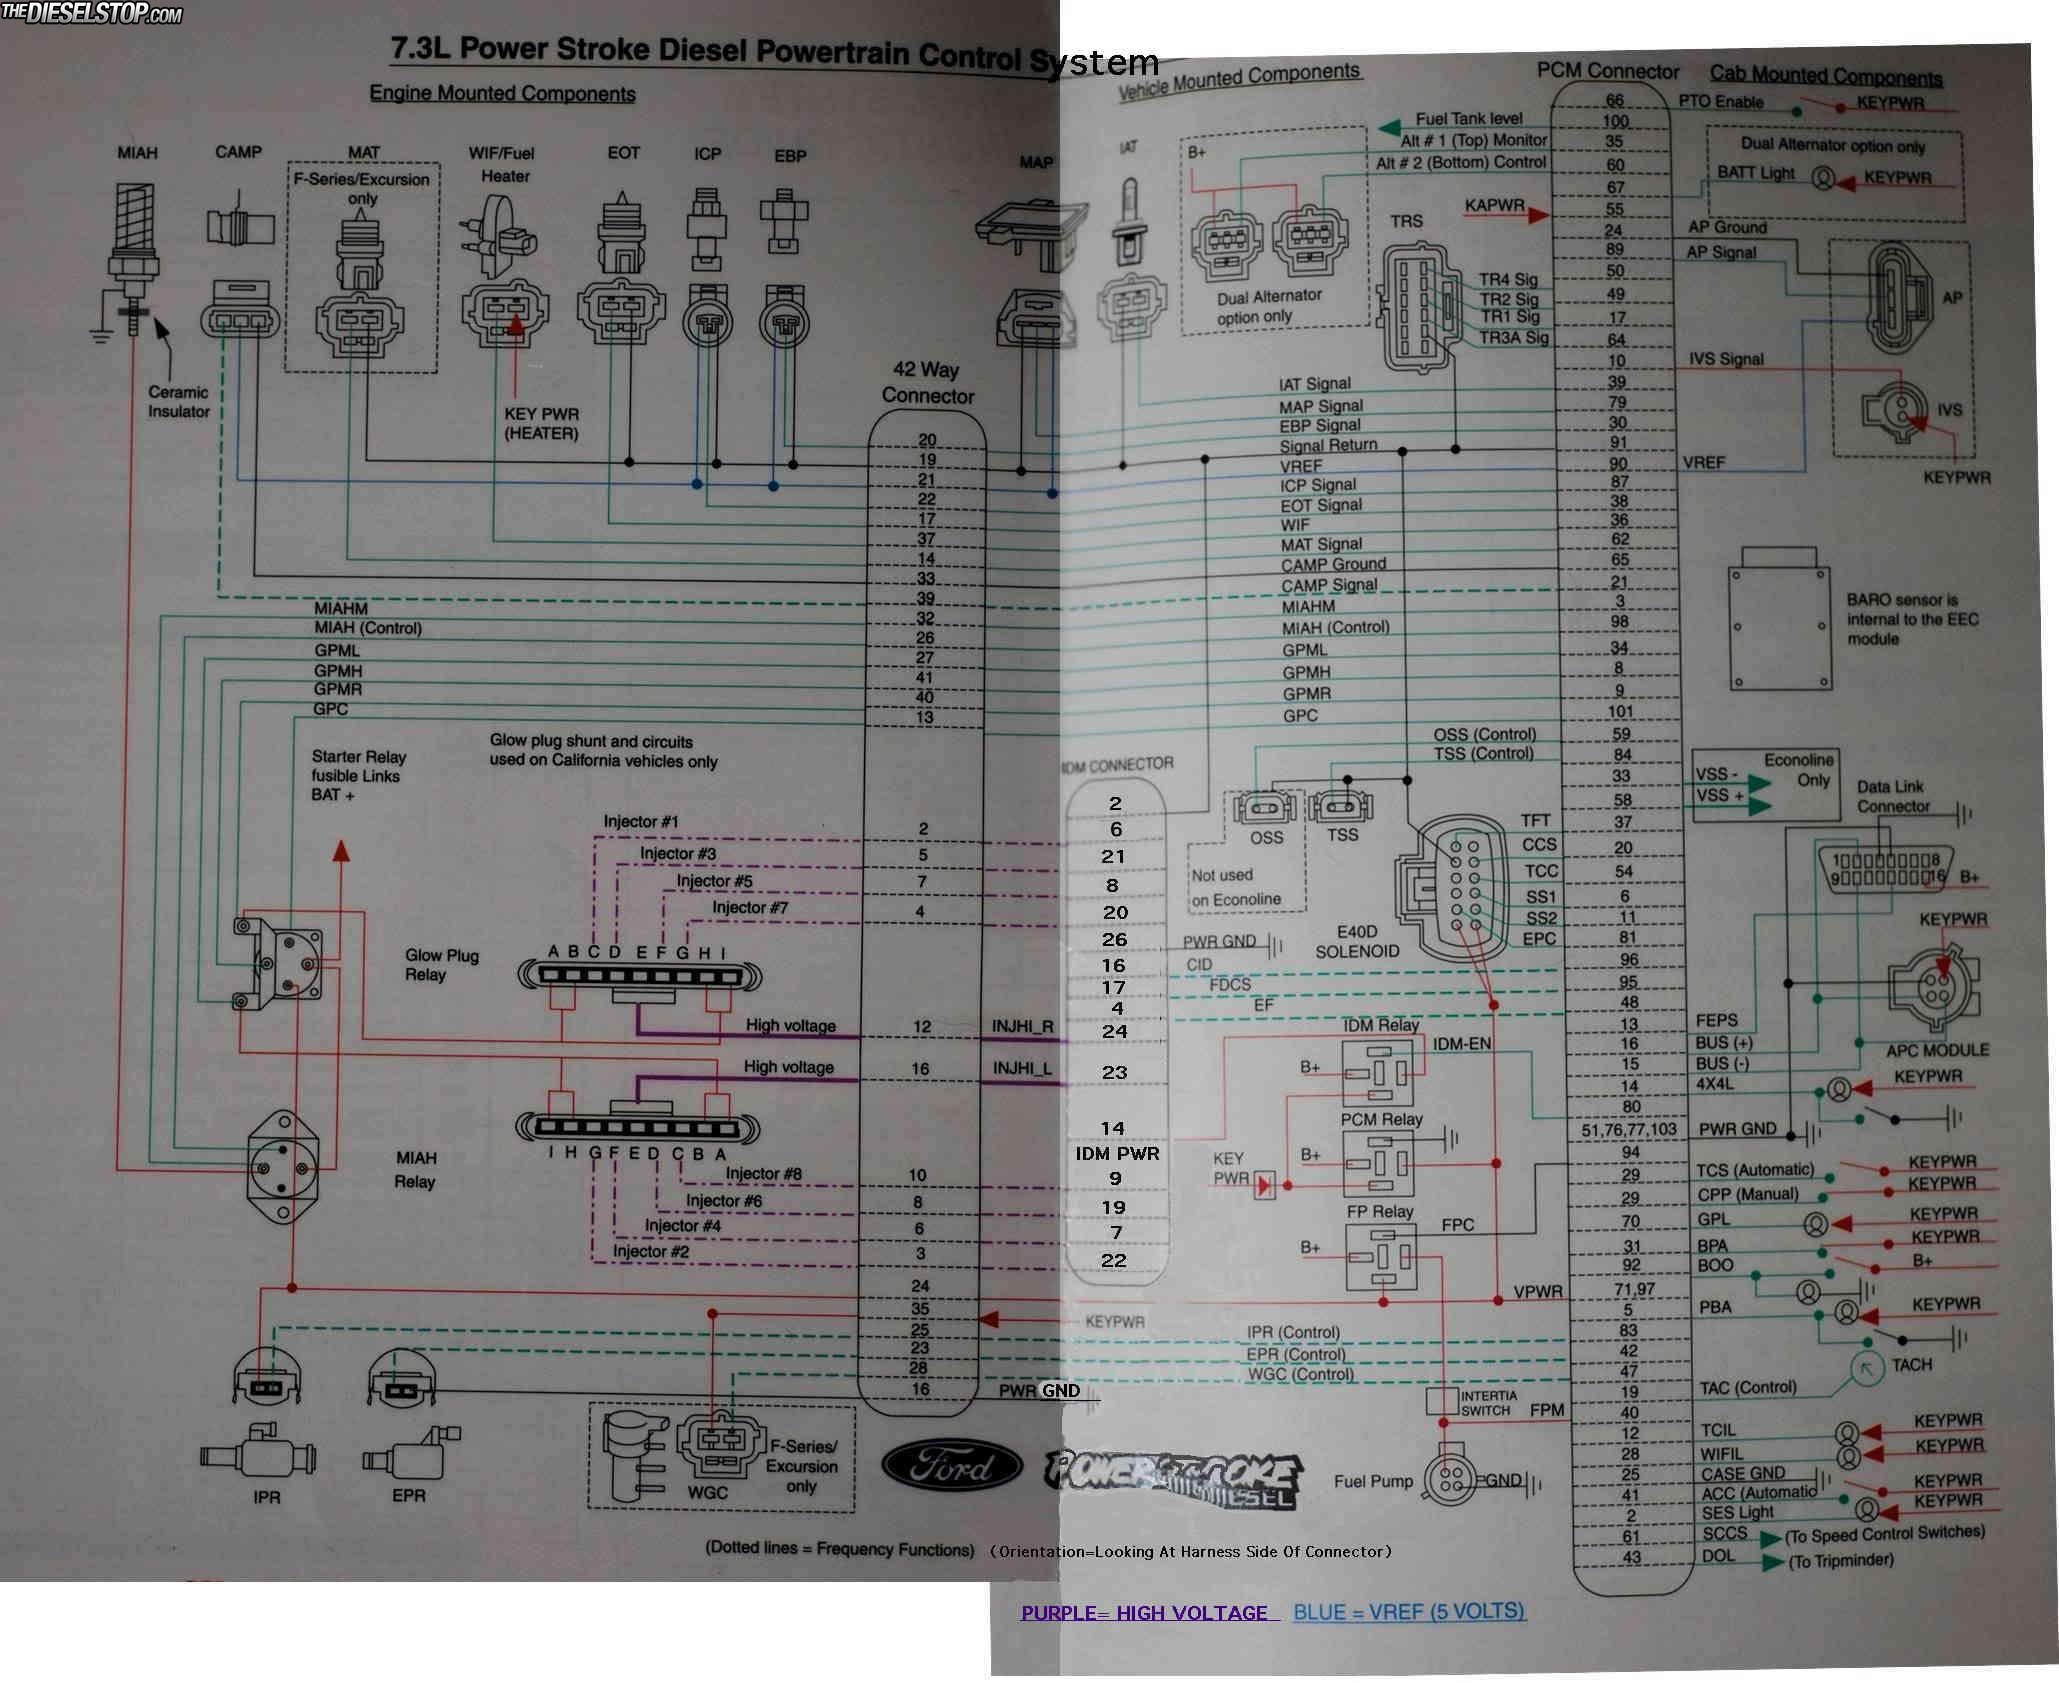 2004 Ford F 250 Diesel Super Duty Fuse Box Diagram All Kind Of 1999 Explorer Xlt Fast Truck And Trailer Llc Technical Info Wire Scimatic